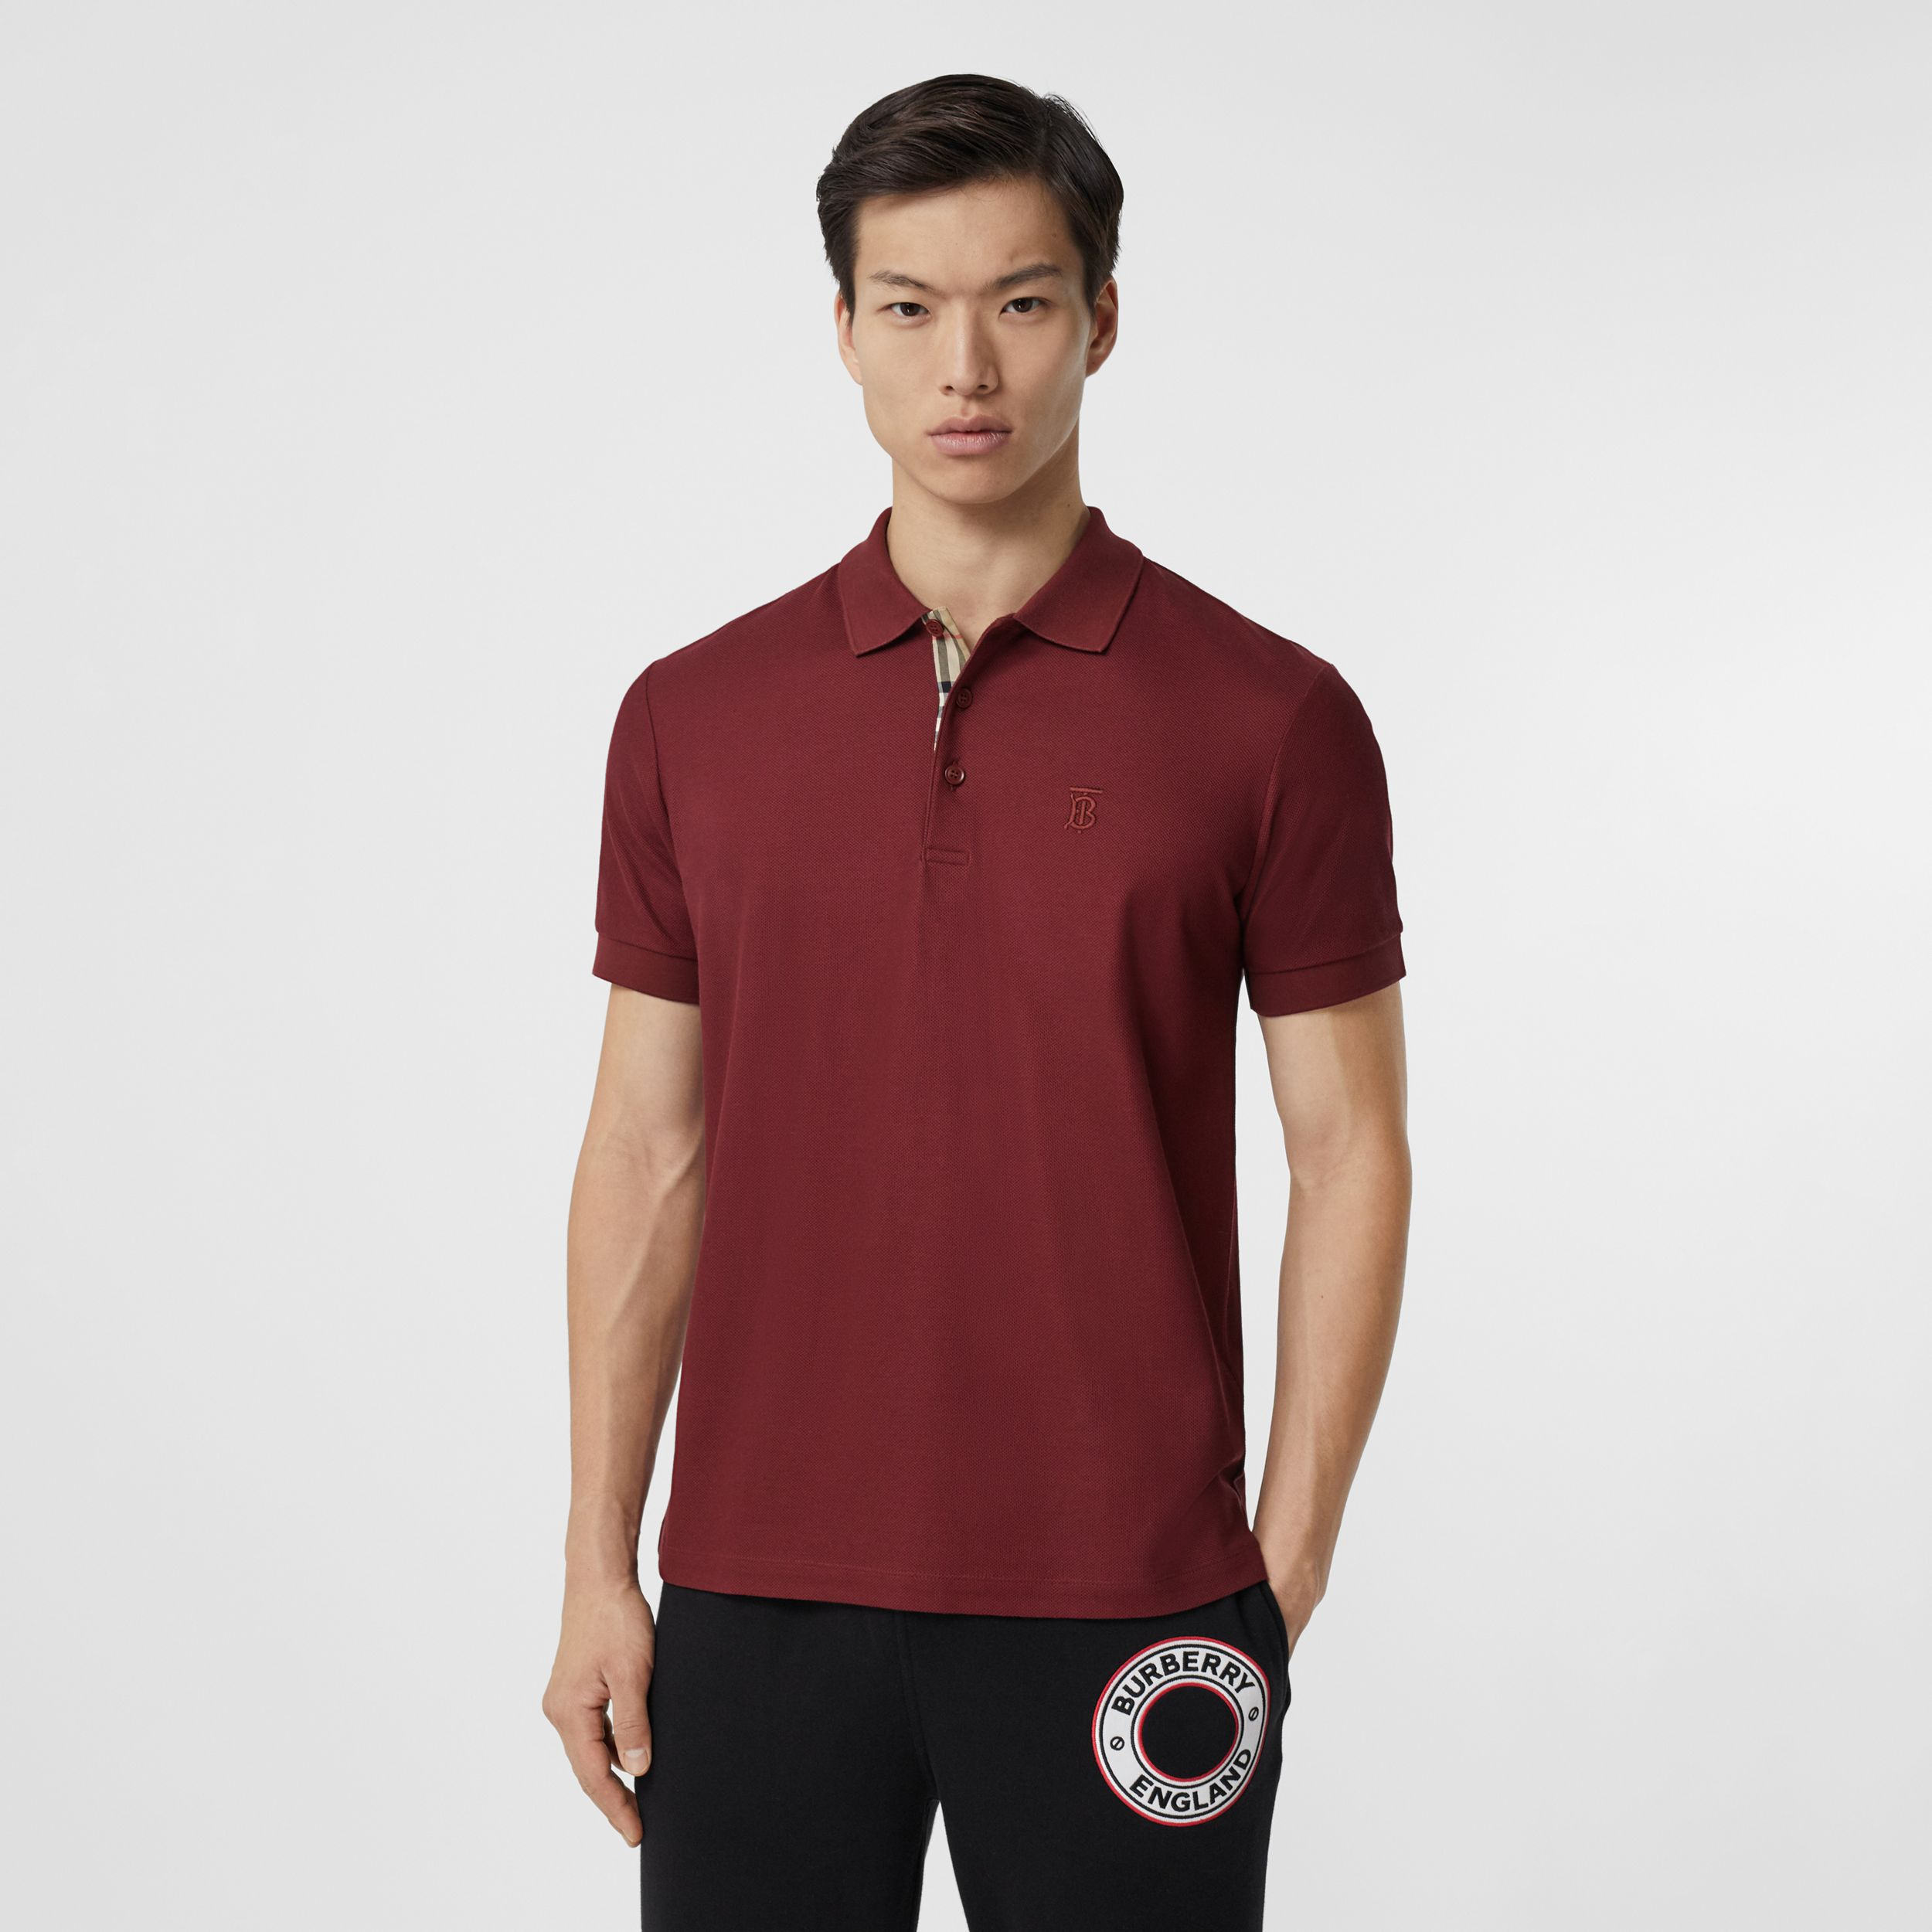 Monogram Motif Cotton Piqué Polo Shirt in Garnet - Men | Burberry - 1